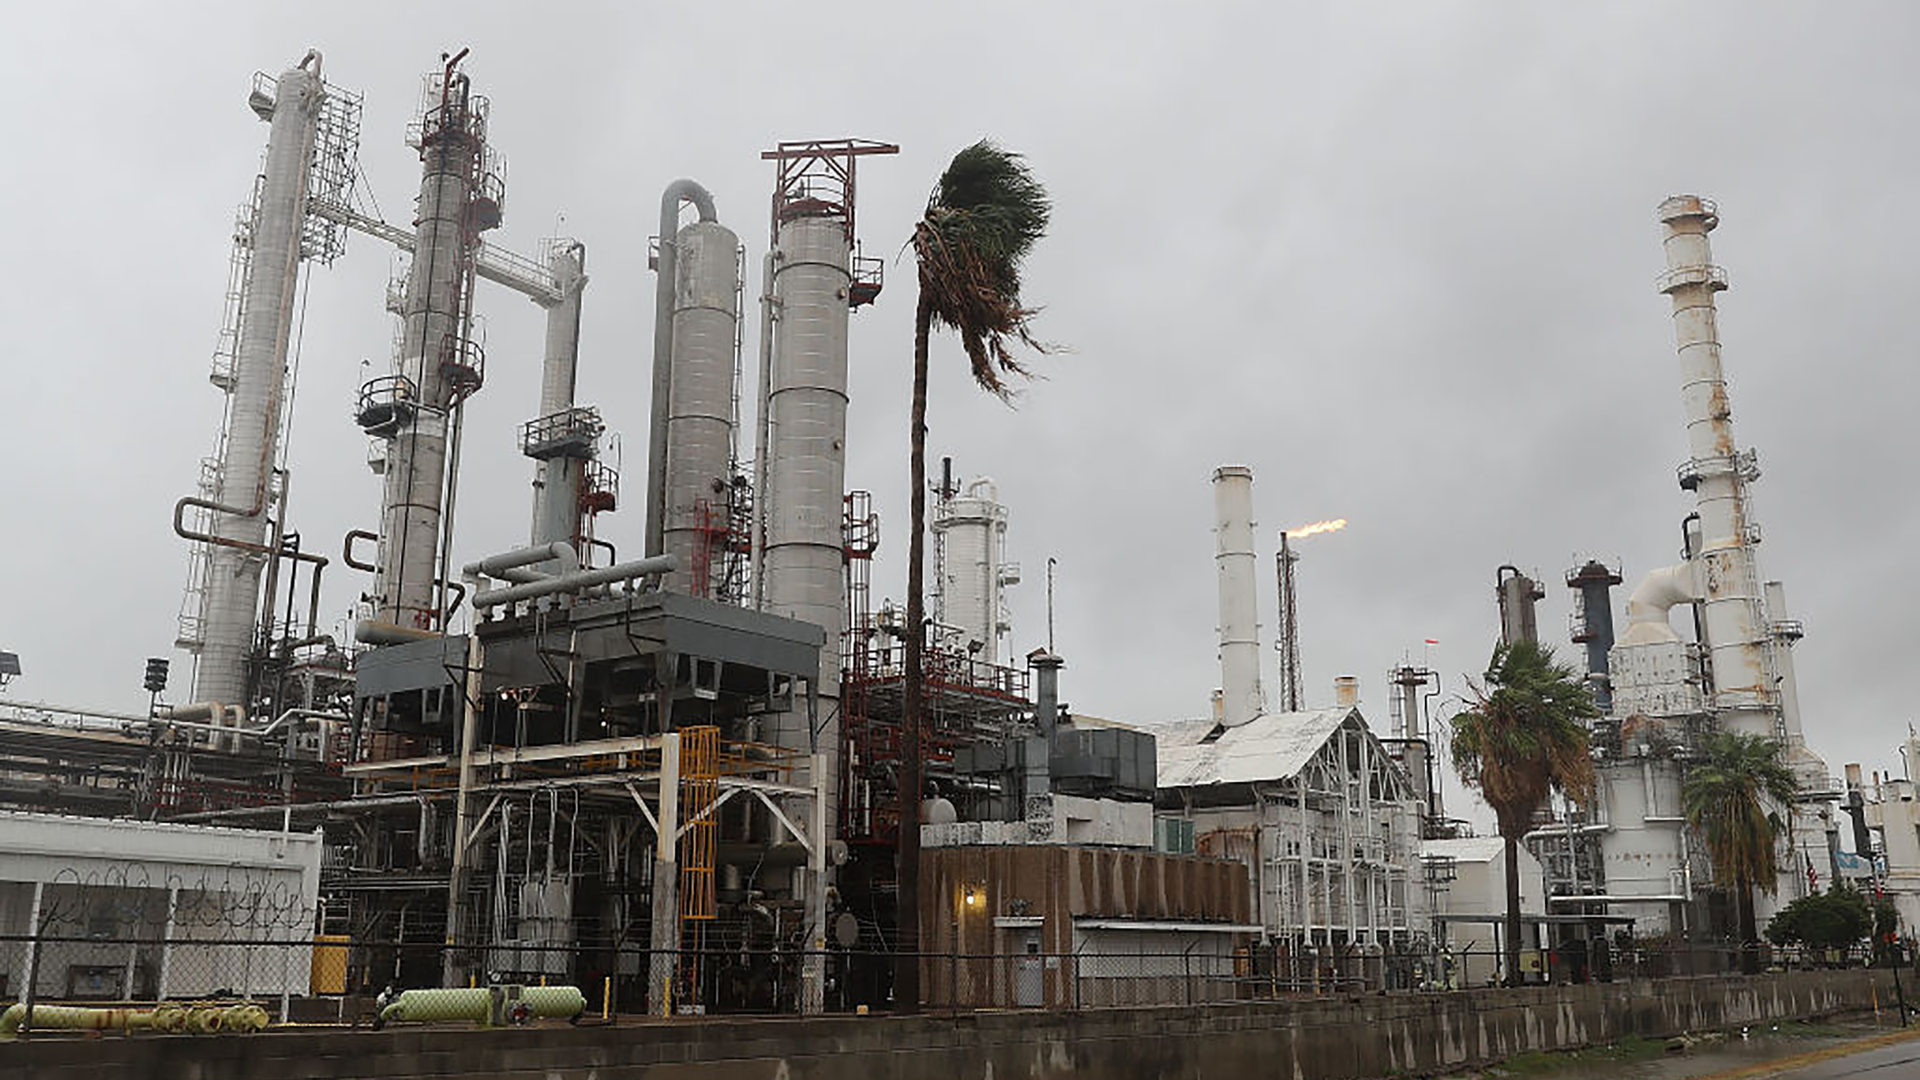 An oil refinery in Corpus Christi, Texas